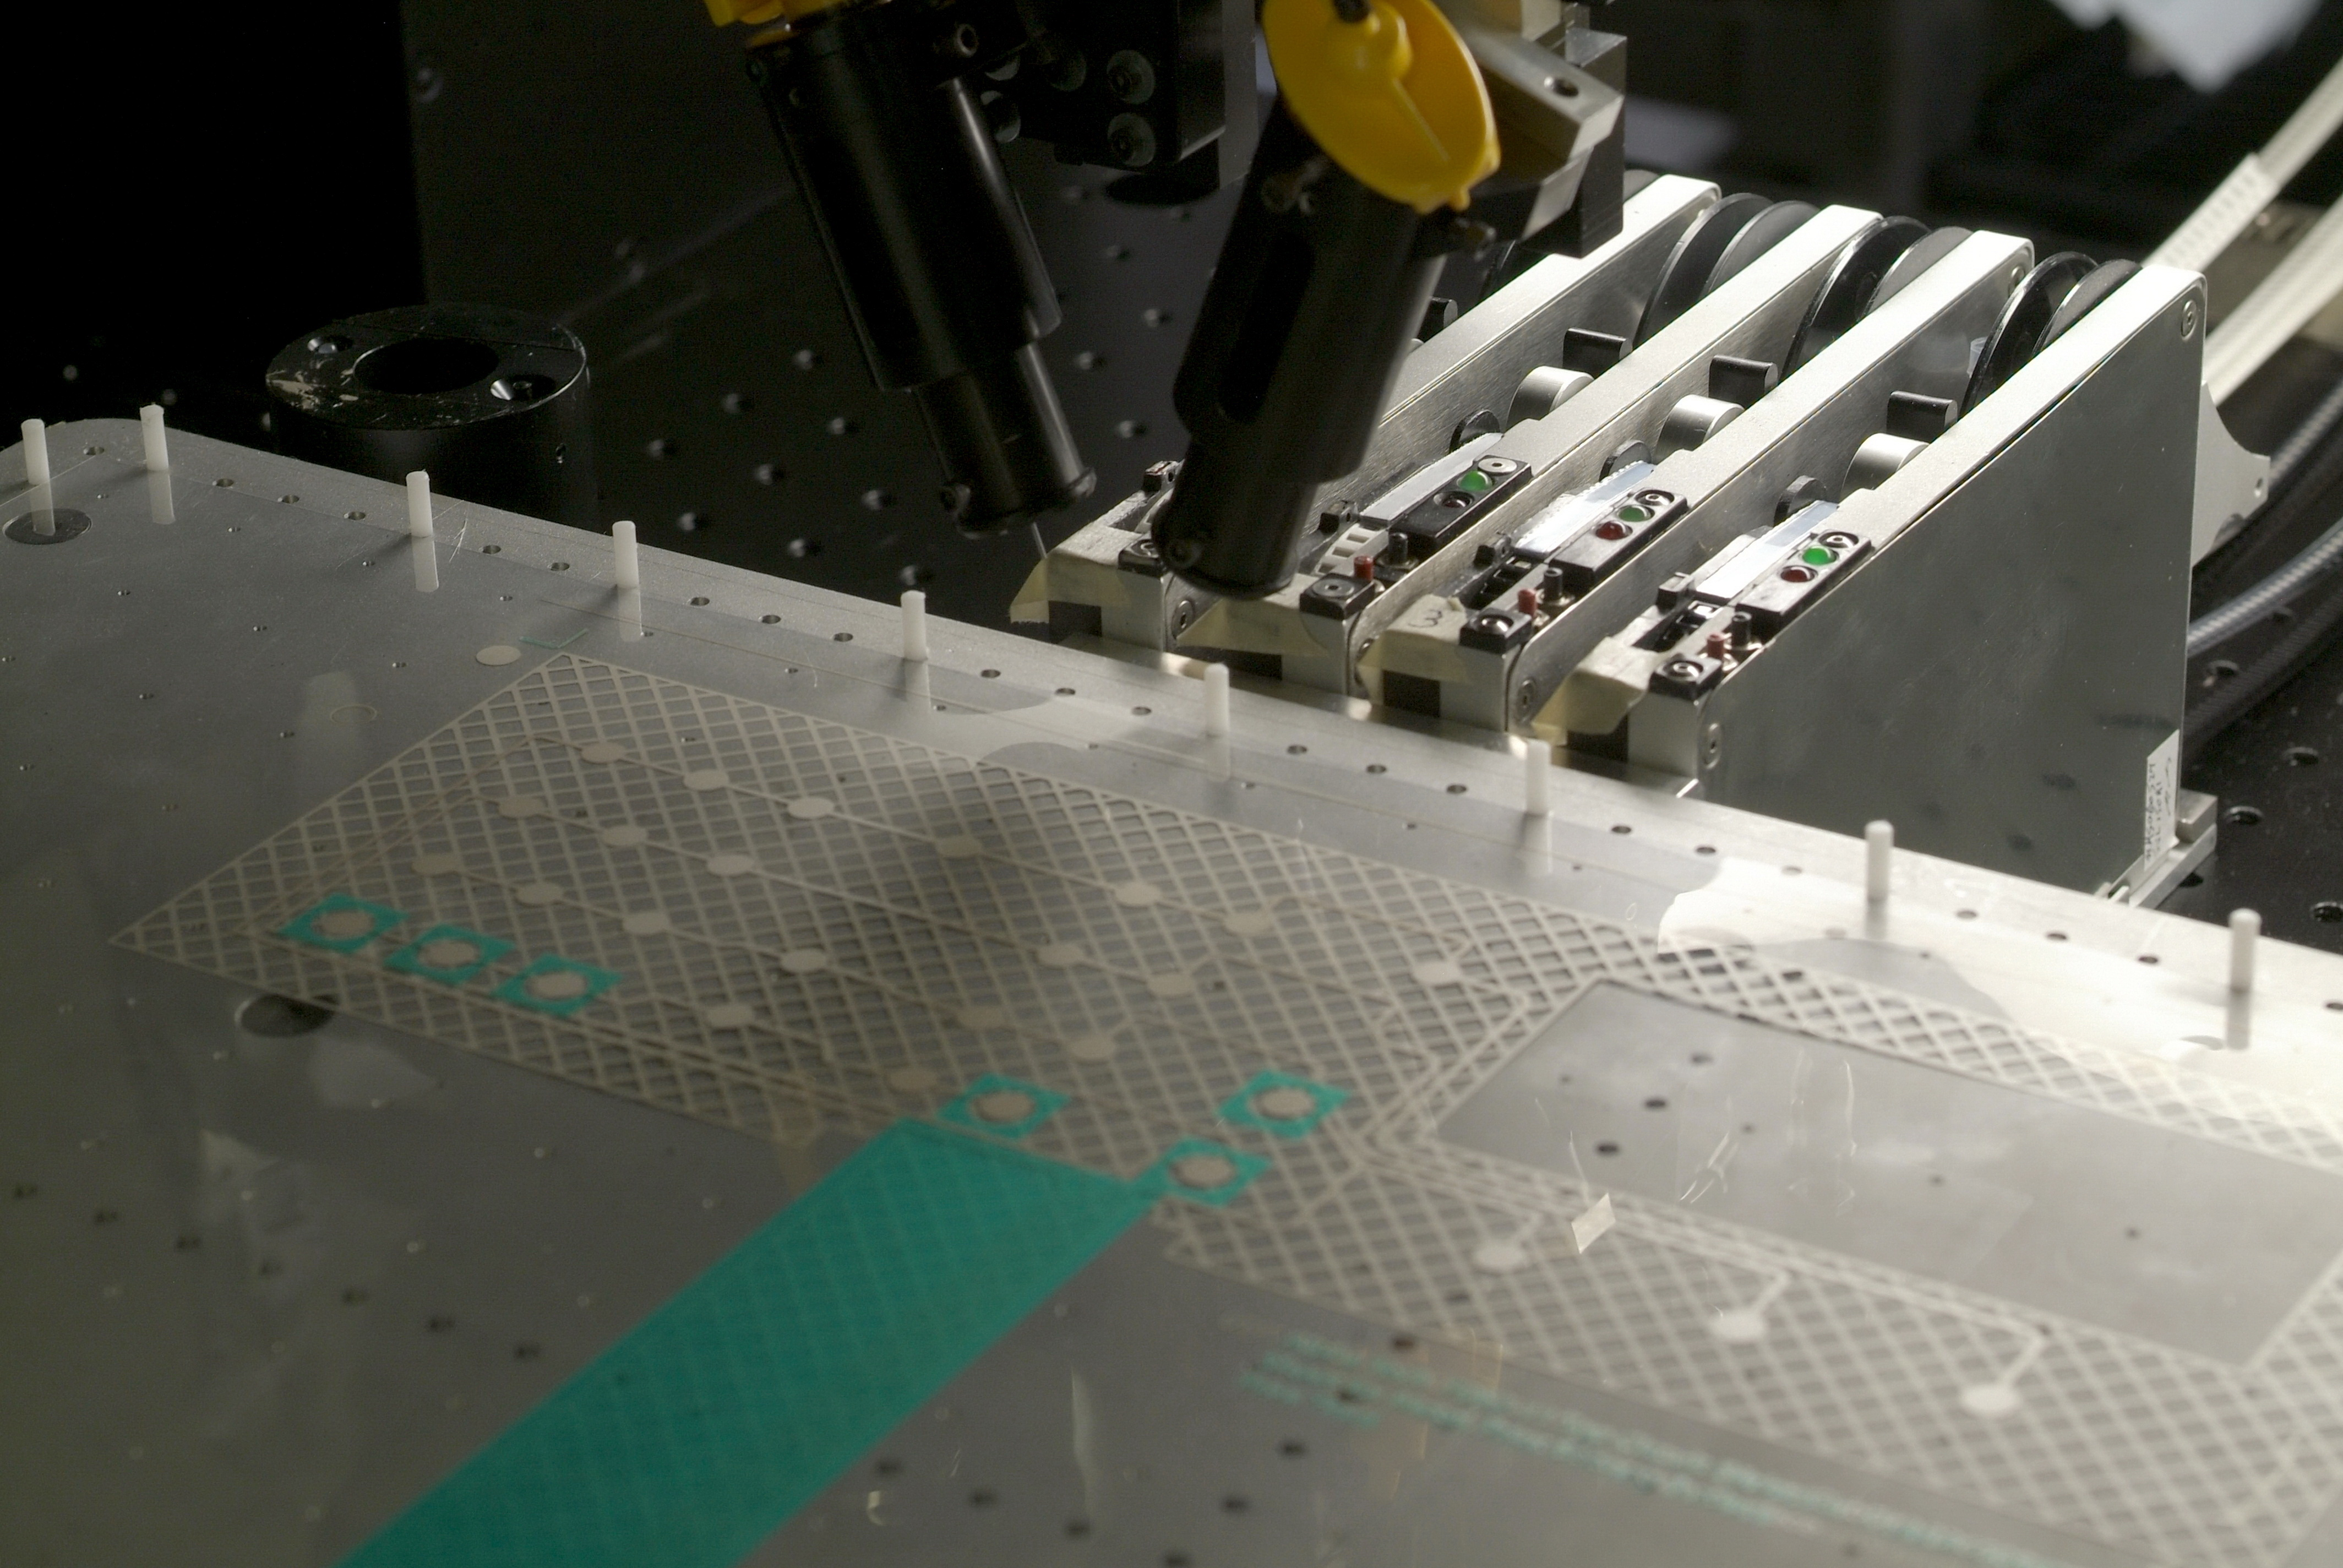 flexible and printed electronics